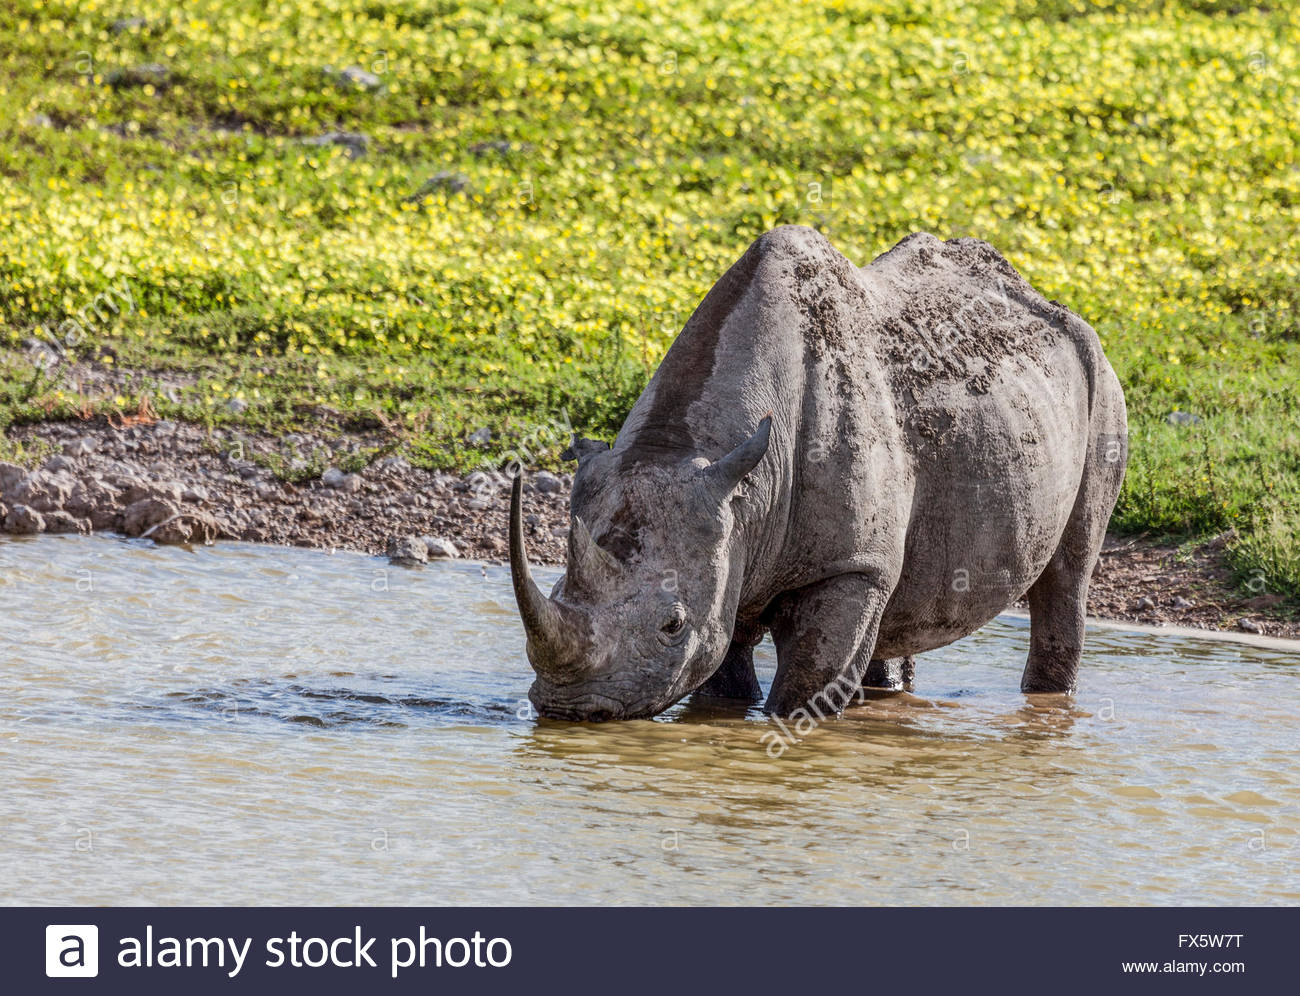 A Black (Hook-lipped) Rhinoceros drinking from a waterhole in Etosha National Park Namibia. Devil's thorn flowers - Stock Image